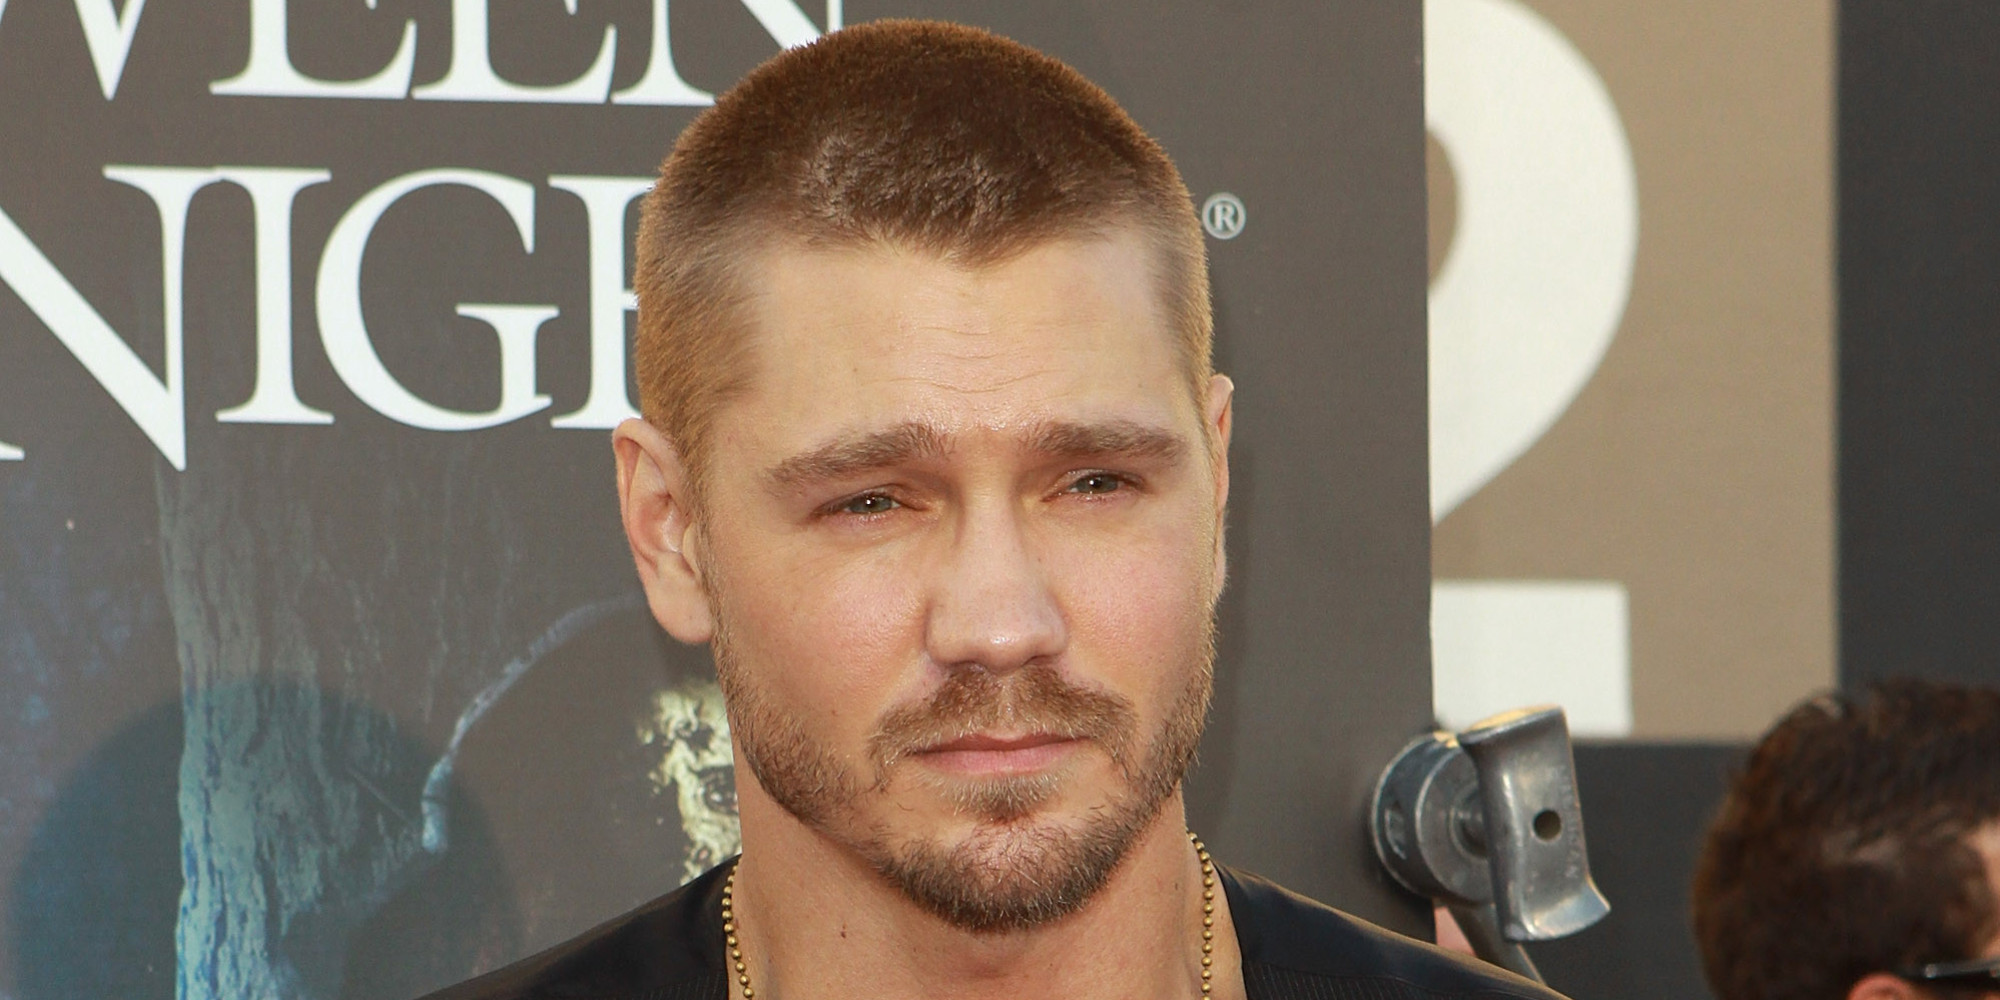 chad michael murray 2003chad michael murray gif, chad michael murray 2016, chad michael murray 2017, chad michael murray and hilary duff, chad michael murray son, chad michael murray height, chad michael murray vk, chad michael murray 2014, chad michael murray one tree hill, chad michael murray wiki, chad michael murray 2003, chad michael murray films, chad michael murray kinopoisk, chad michael murray tumblr gif, chad michael murray gallery, chad michael murray supernatural, chad michael murray kiss scenes, chad michael murray sarah roemer, chad michael murray 2005, chad michael murray kenzie dalton